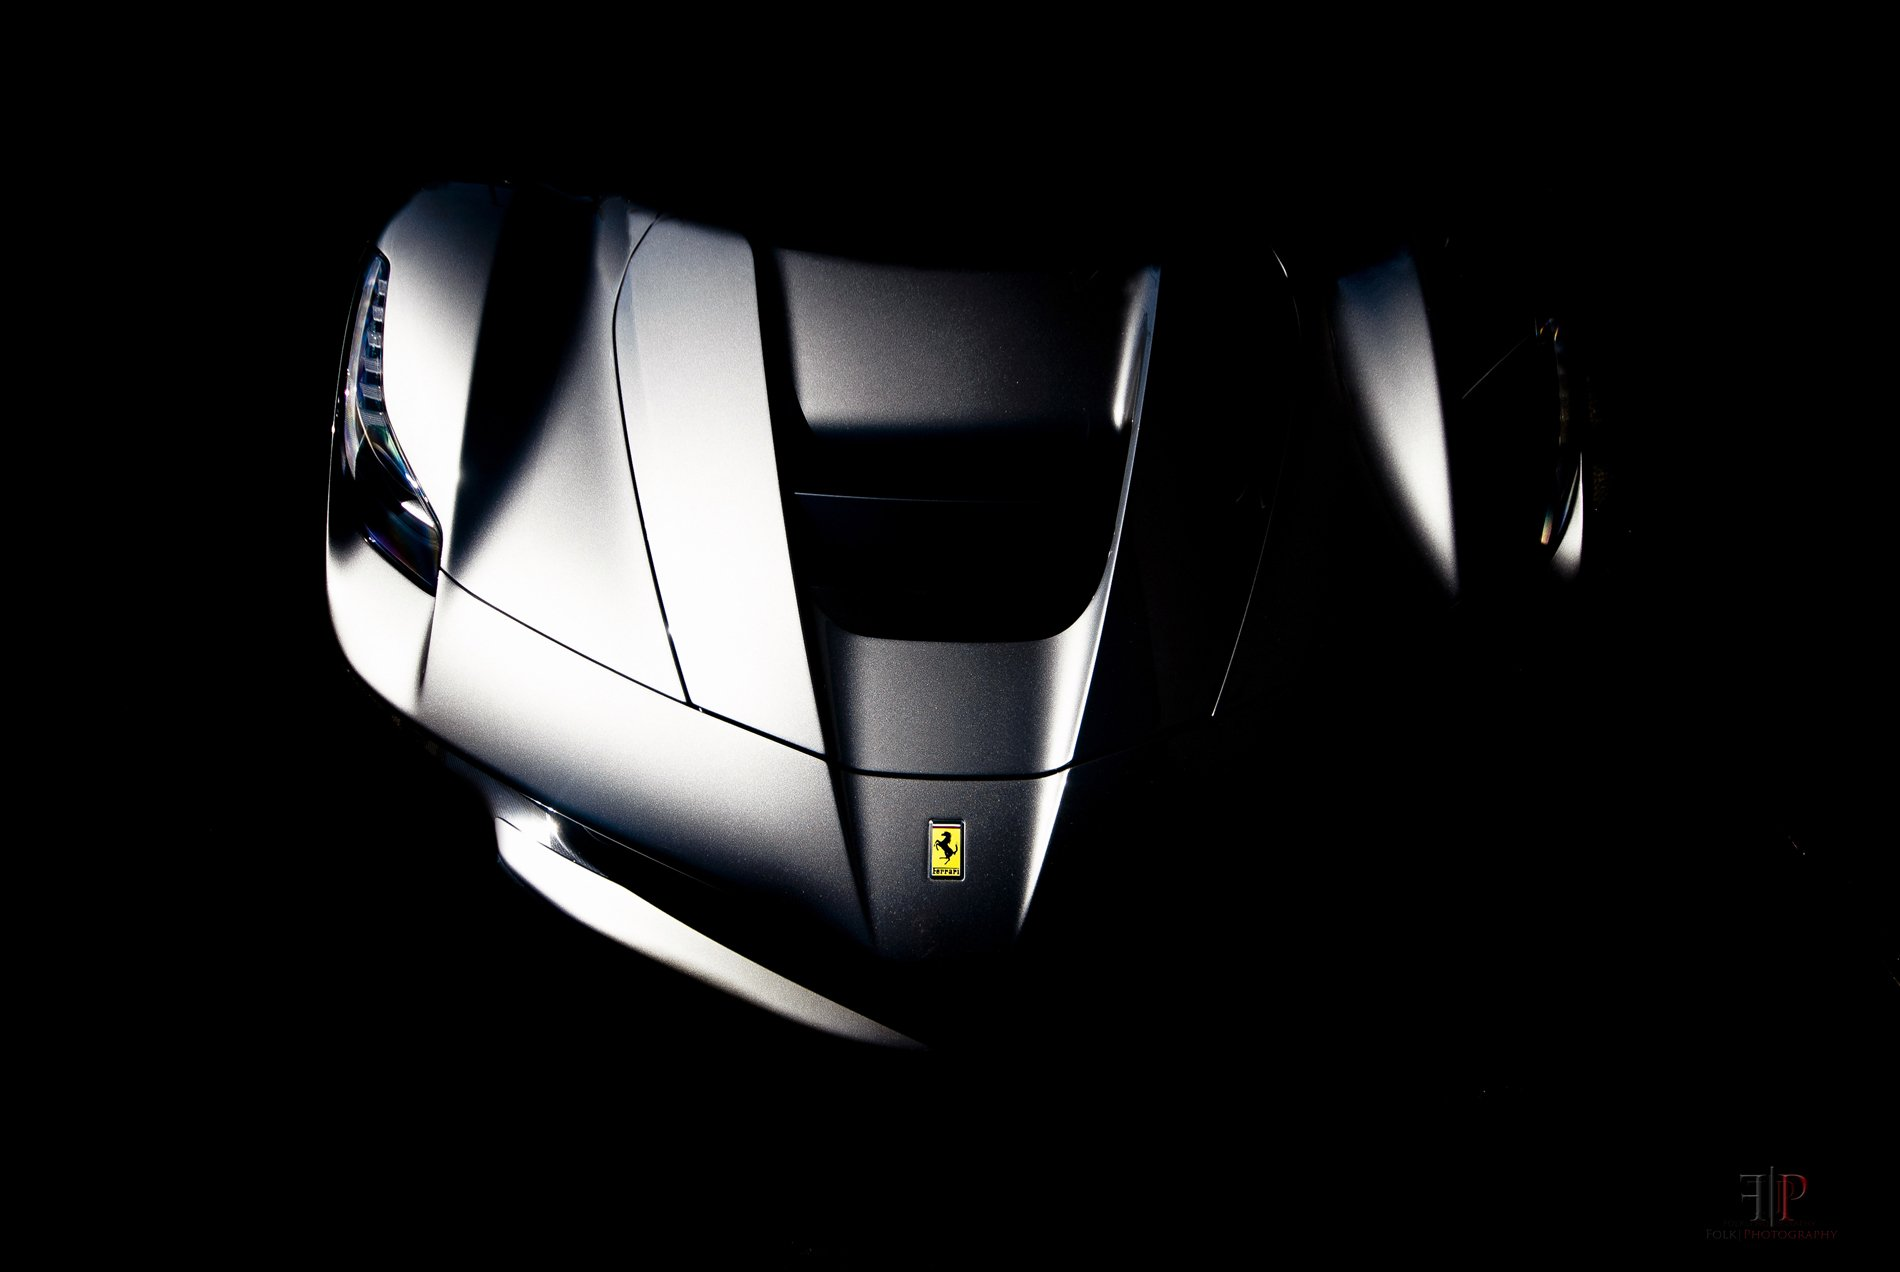 24 ferrari laferrari hd wallpapers | background images - wallpaper abyss